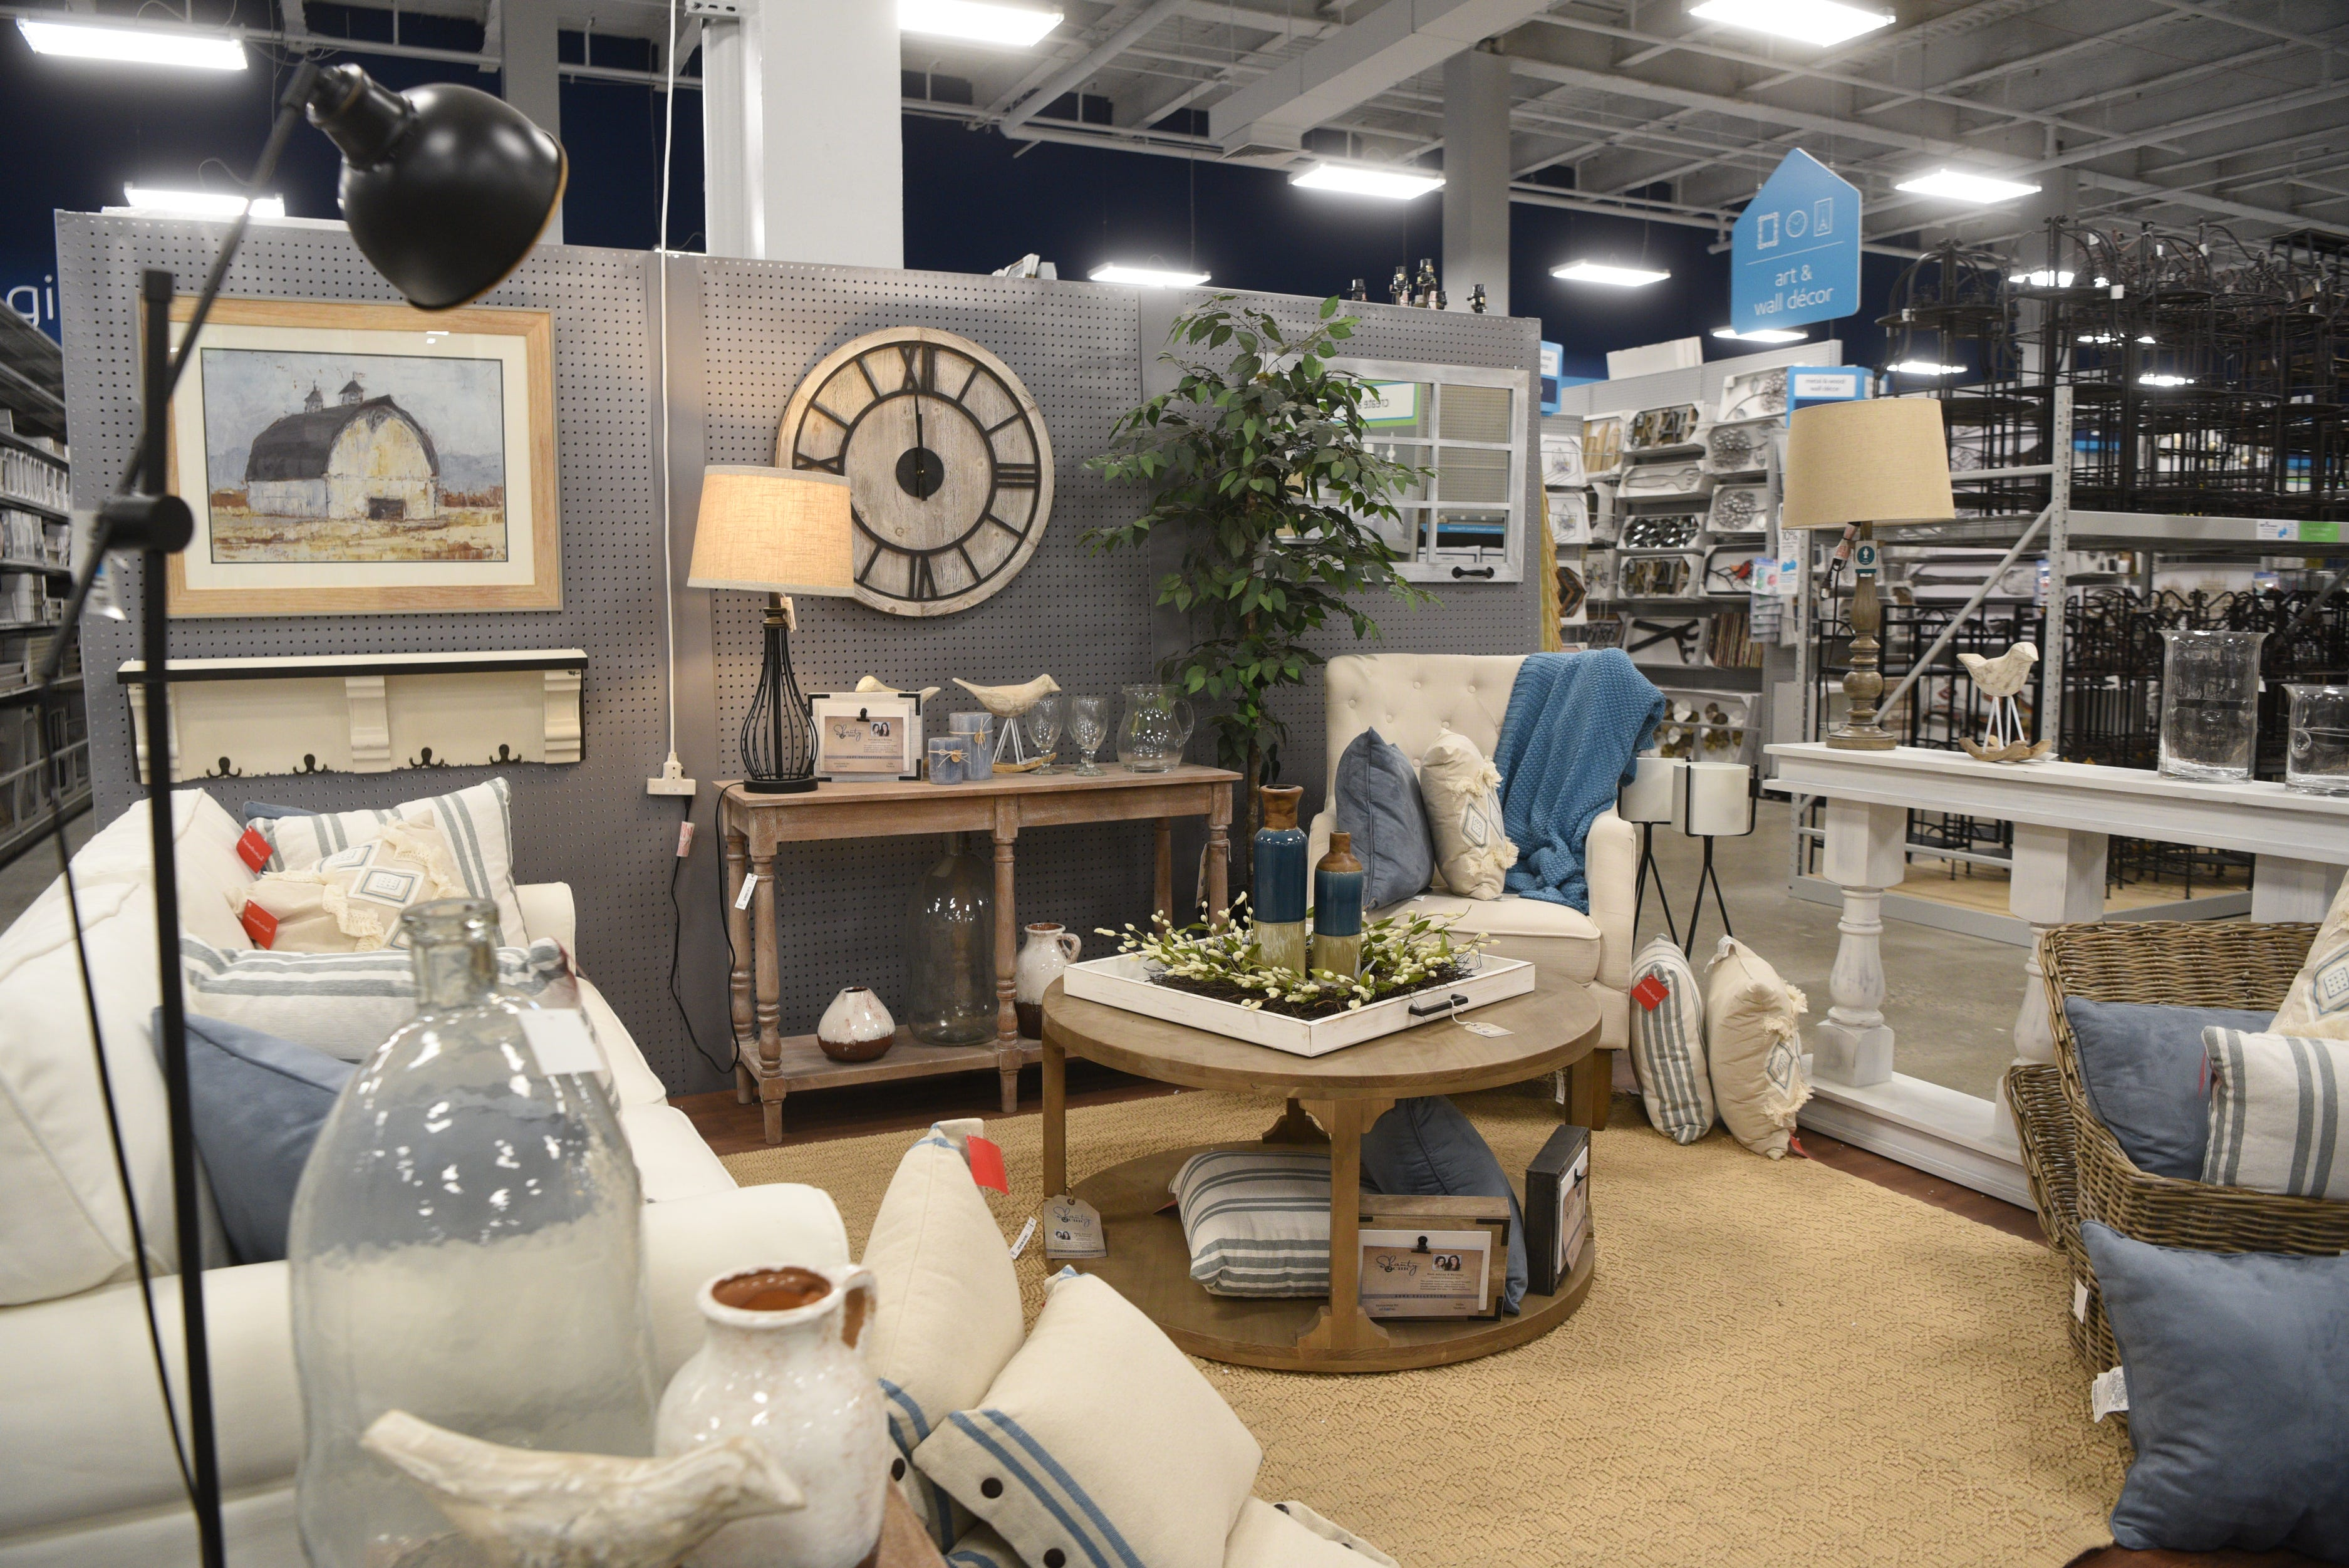 At Home, A Texas Based Home Décor Chain, Opened Its